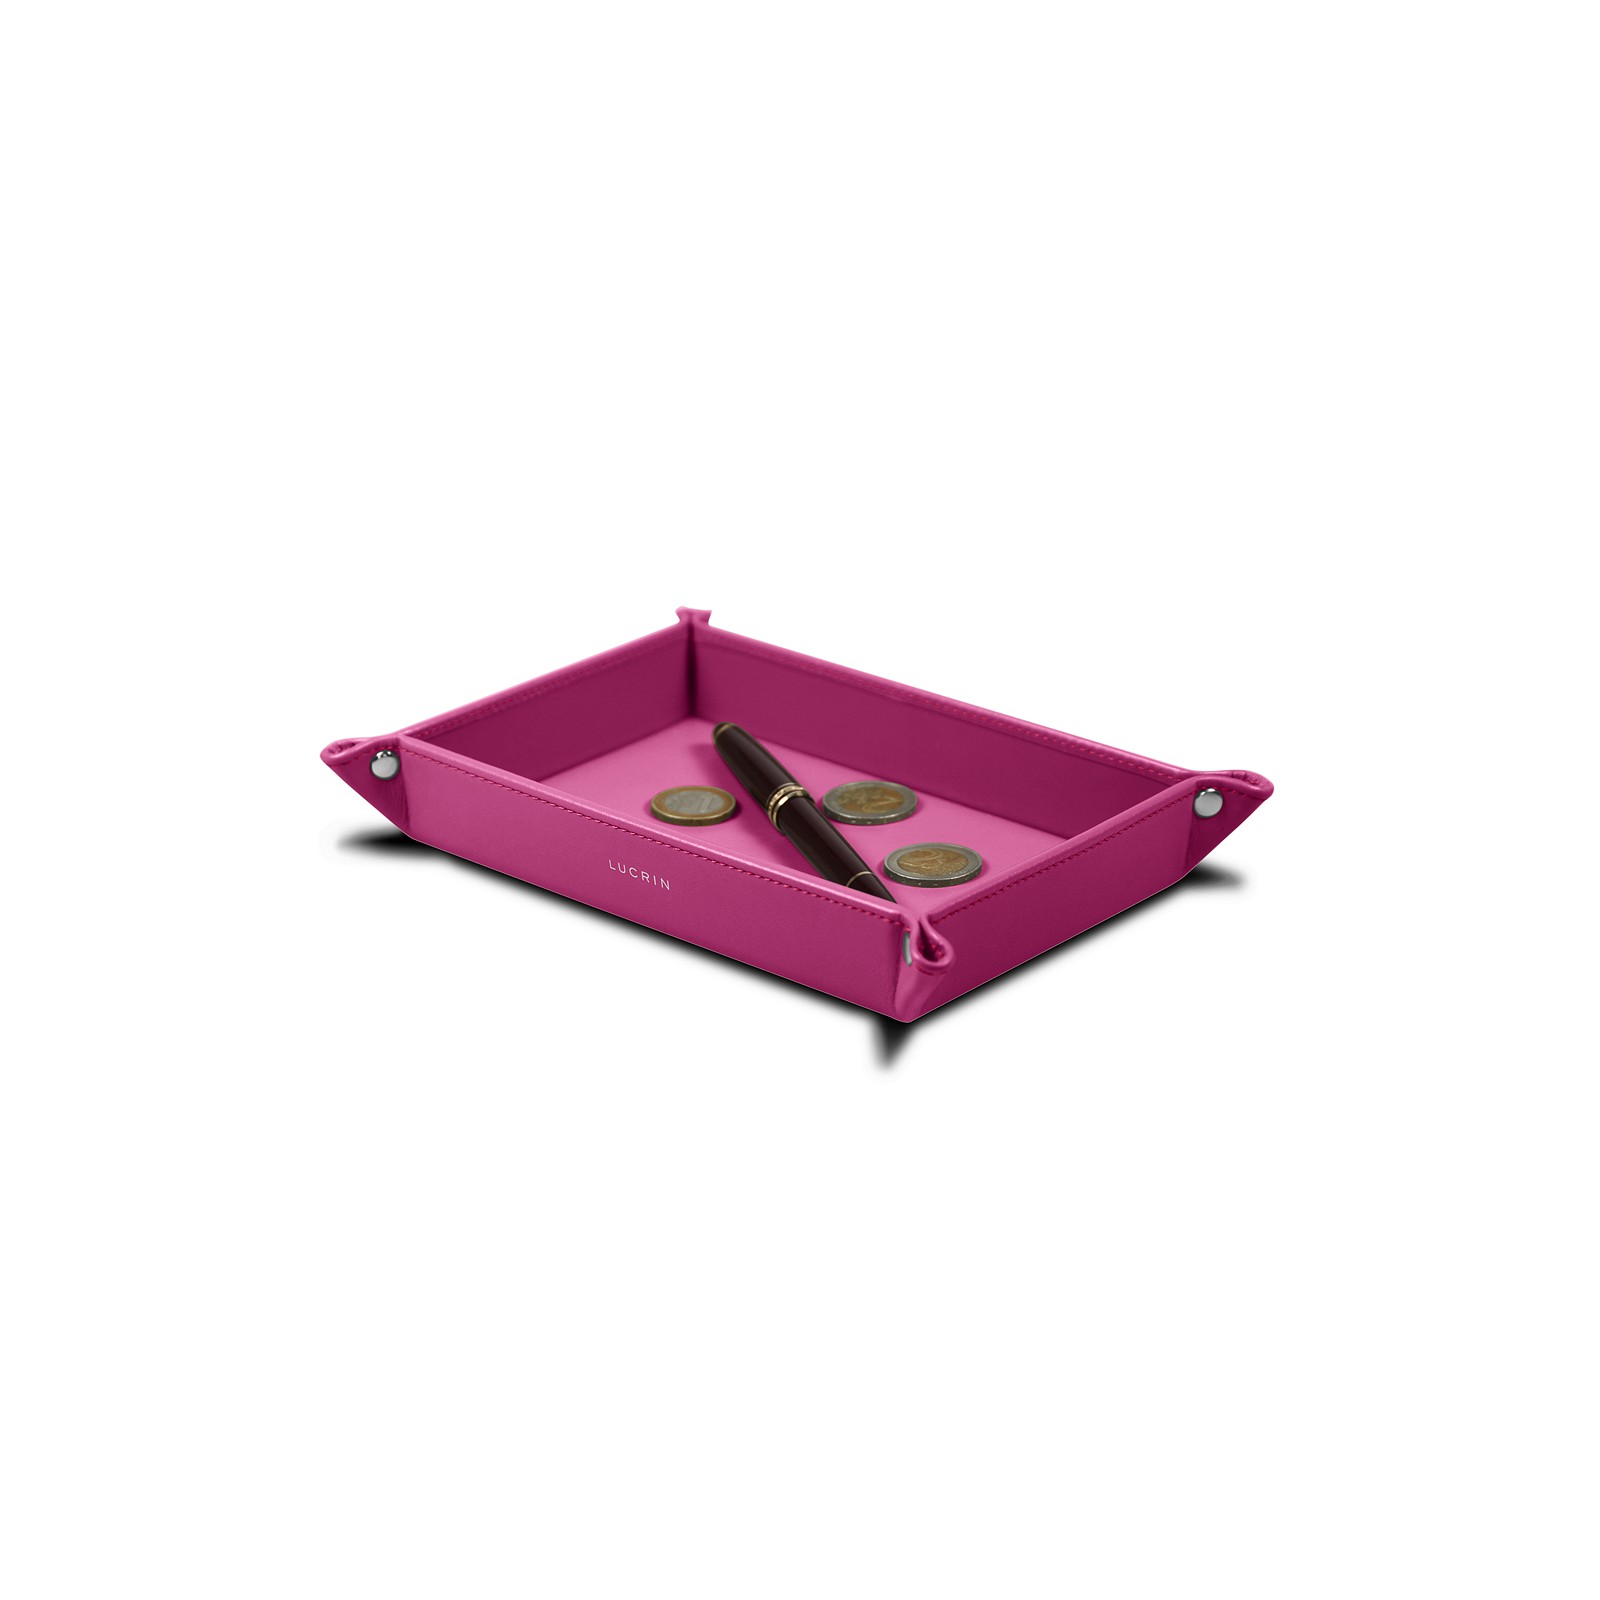 Rectangular tidy tray (6.7 x 4.3 x 1.2 inches)